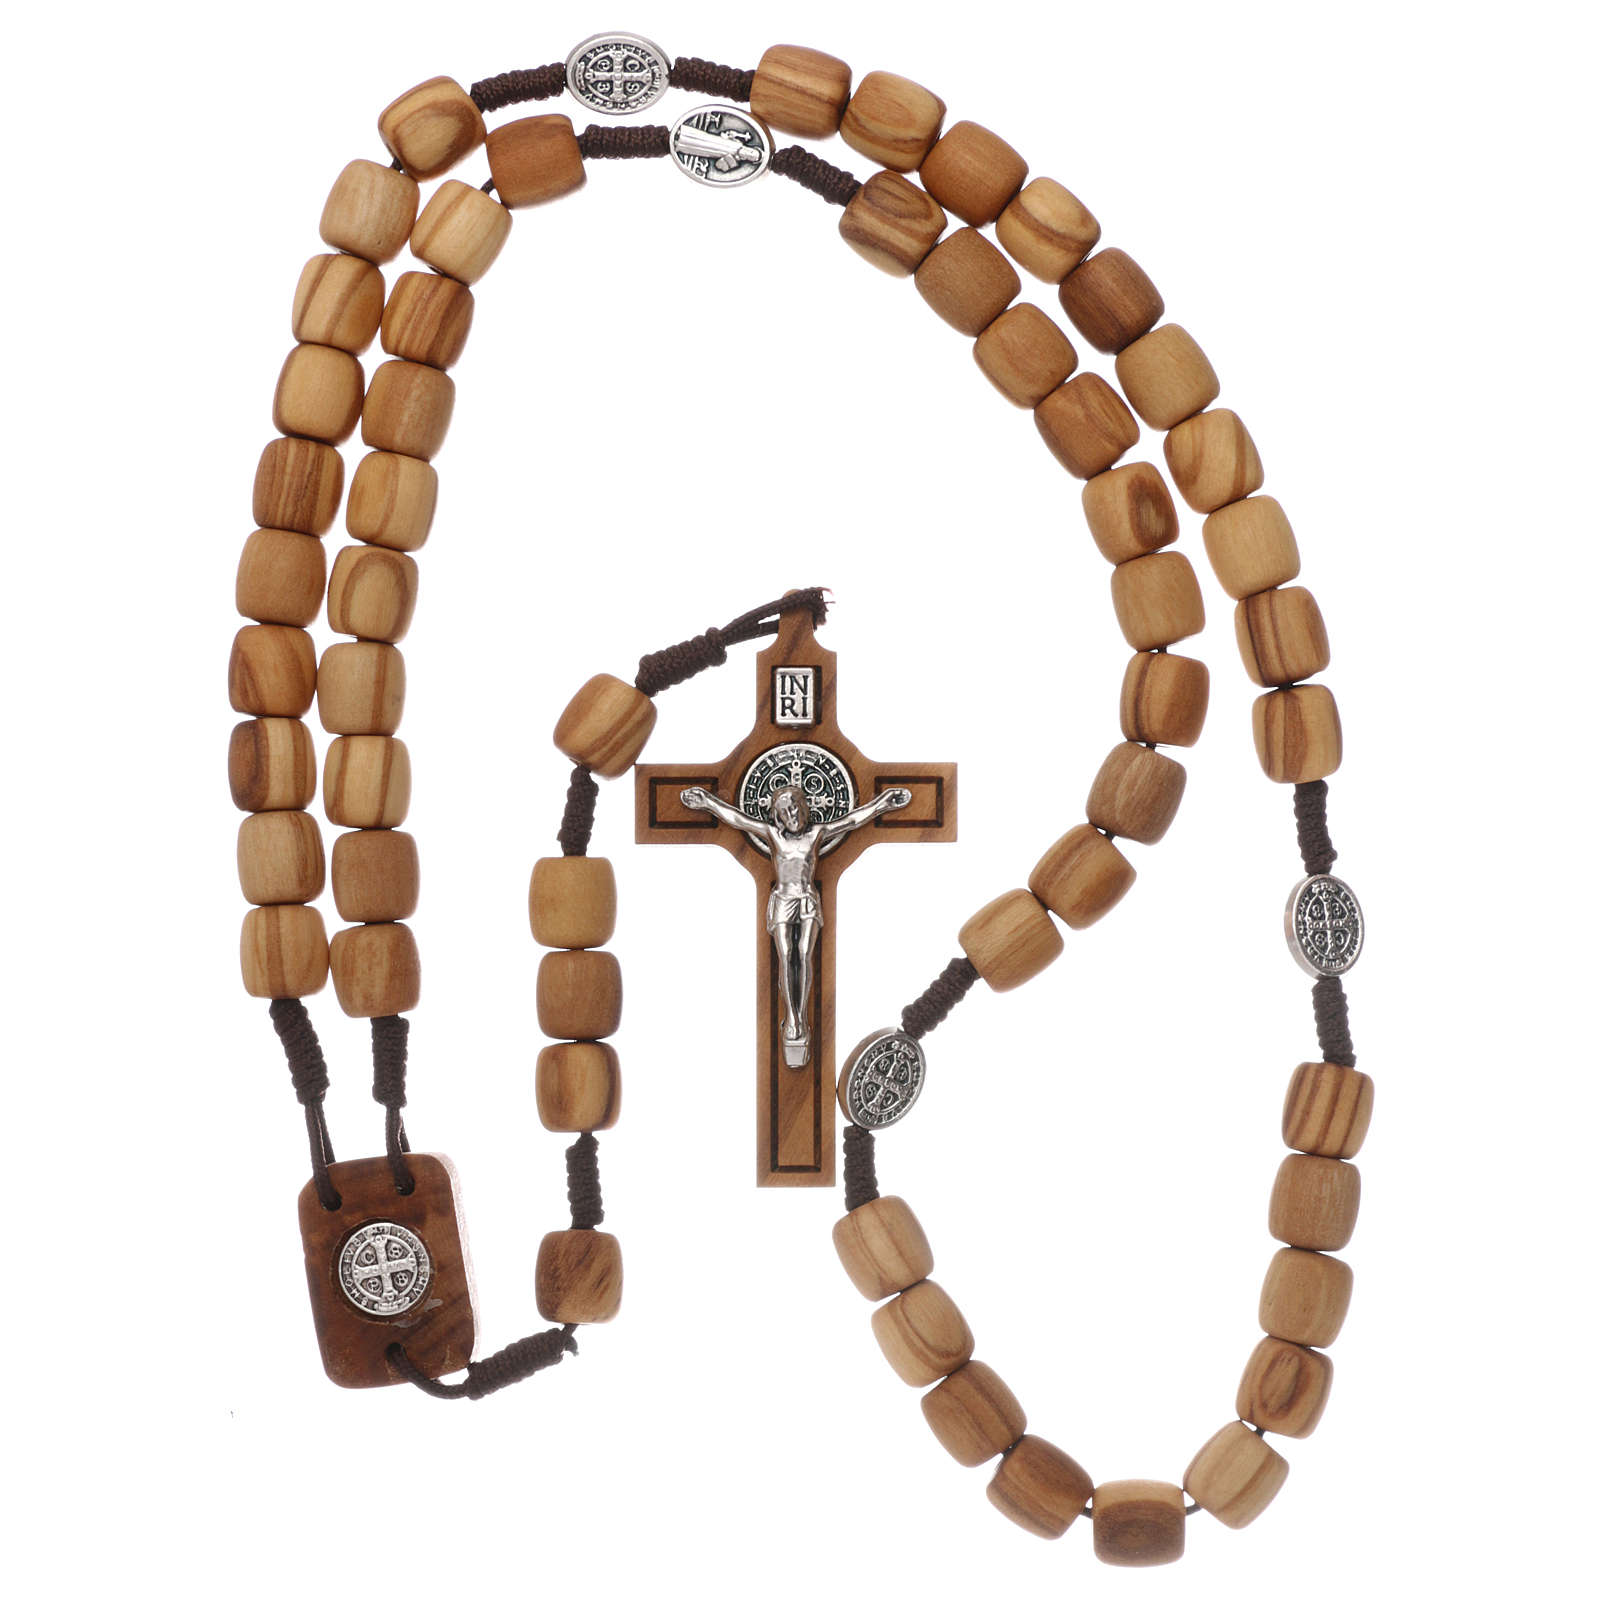 Medjugorje rosary with olive wood 10 mm cord and olive wood center piece 4